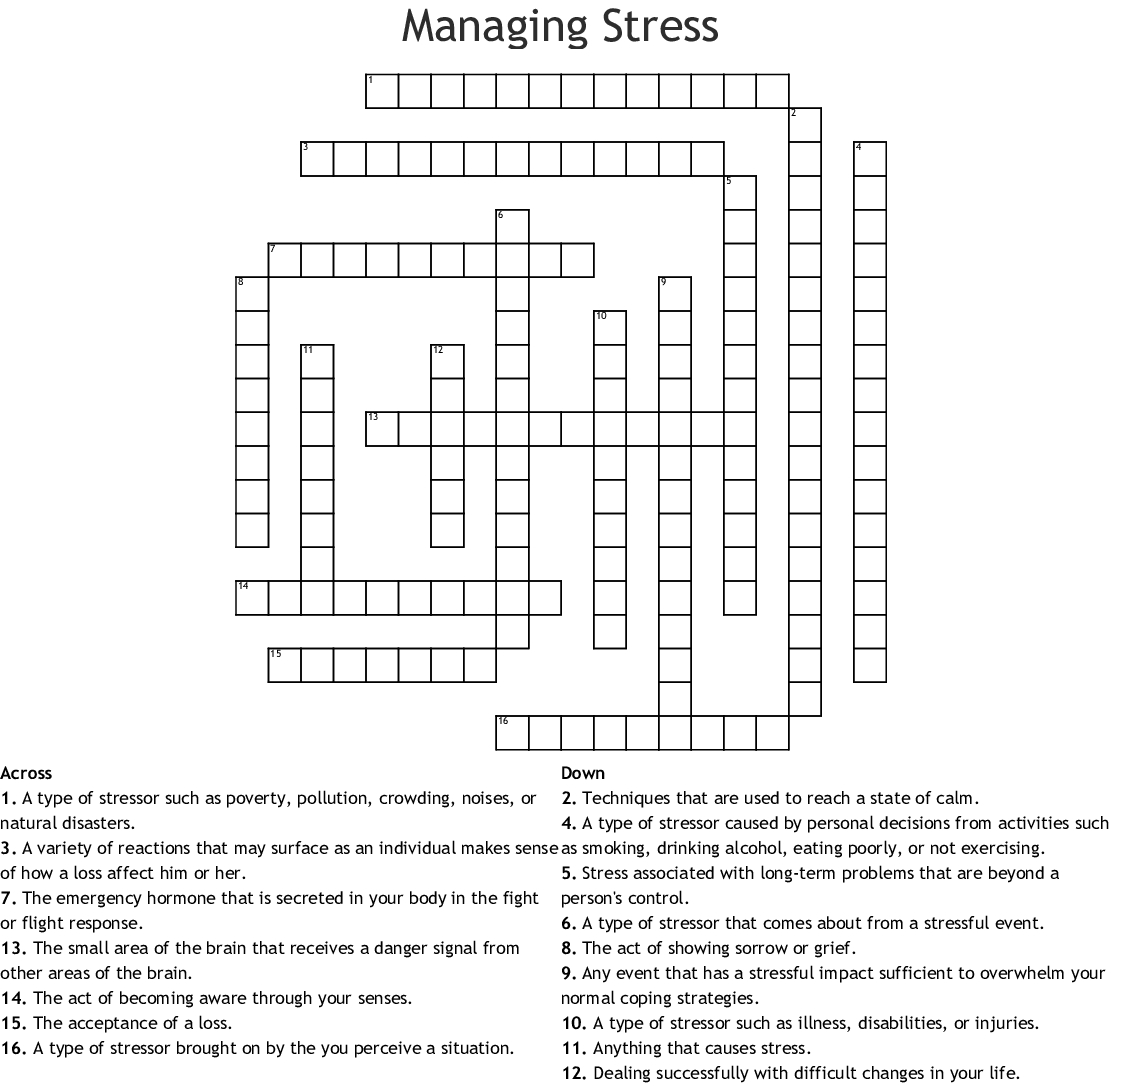 Managing Stress Crossword - Wordmint - Printable Stress Management Crossword Puzzle